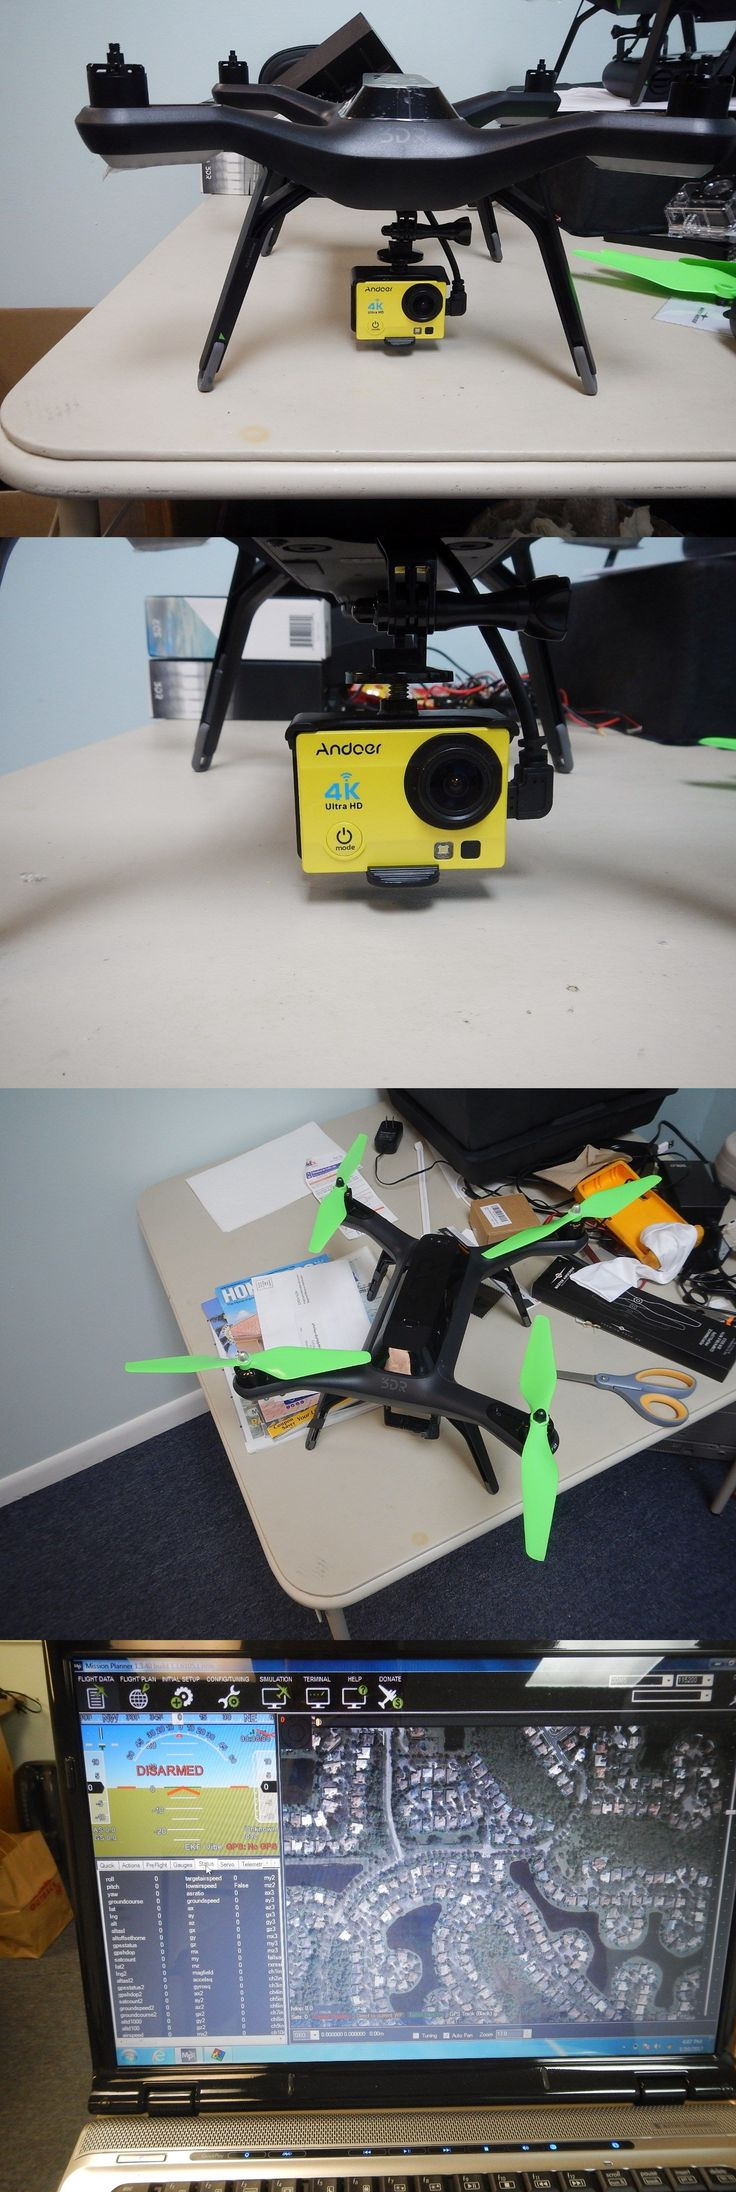 Other RC Model Vehicles and Kits 182186: 3Dr Solo Drone Complete Kit -With 12 Mp Dvr Camera !!! Ready To Fly -> BUY IT NOW ONLY: $275 on eBay!